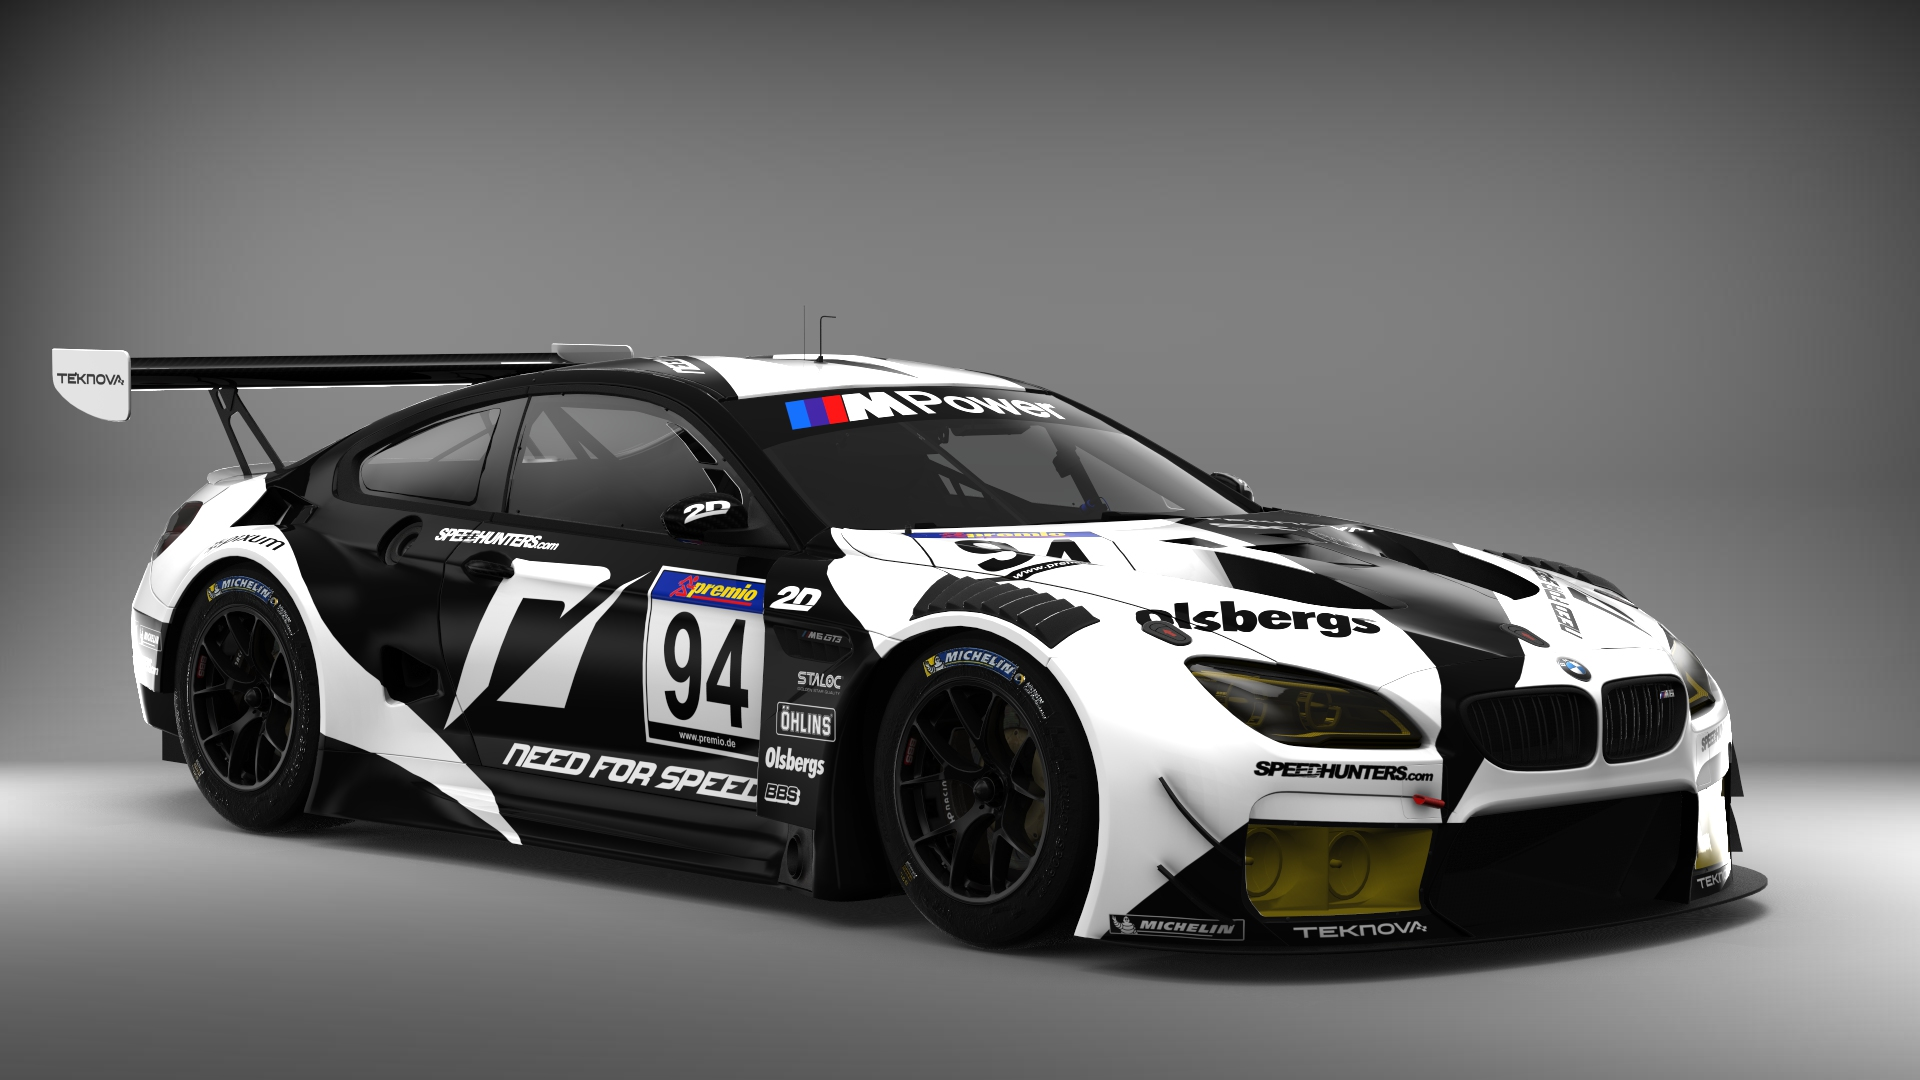 Bmw M6 Gt3 Andyblackmore S Need For Speed Livery Racedepartment